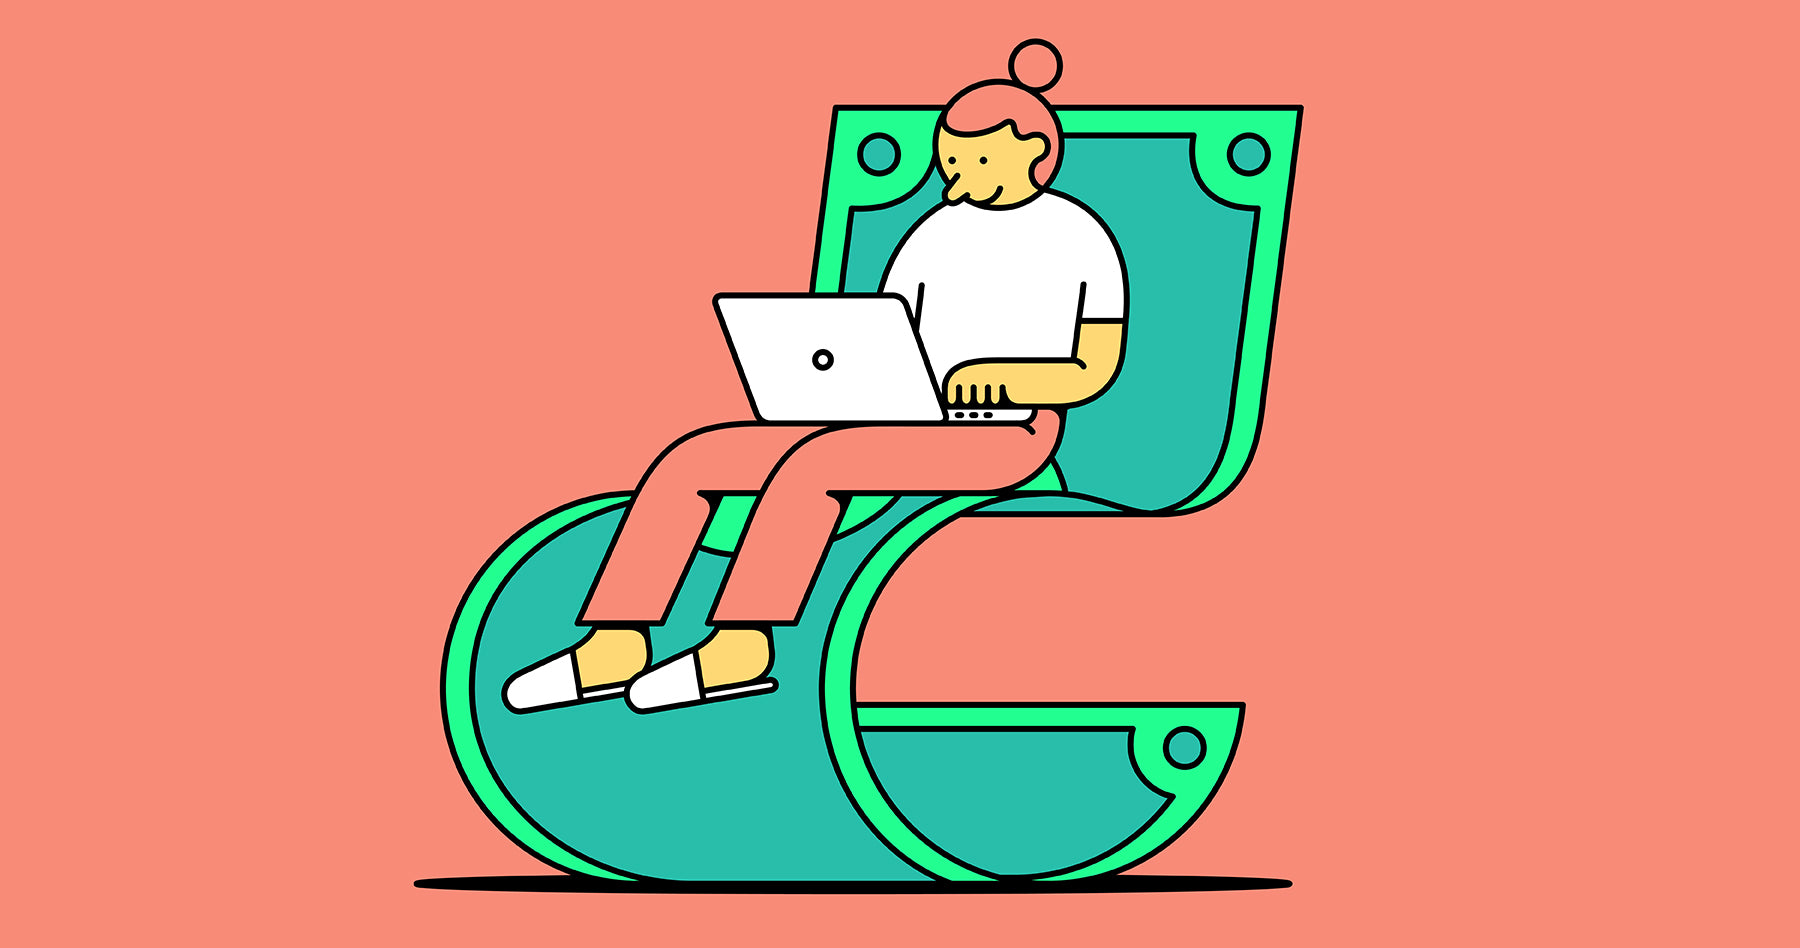 Illustration of a young woman working on a lounge chair made from a dollar bill with laptop on her lap